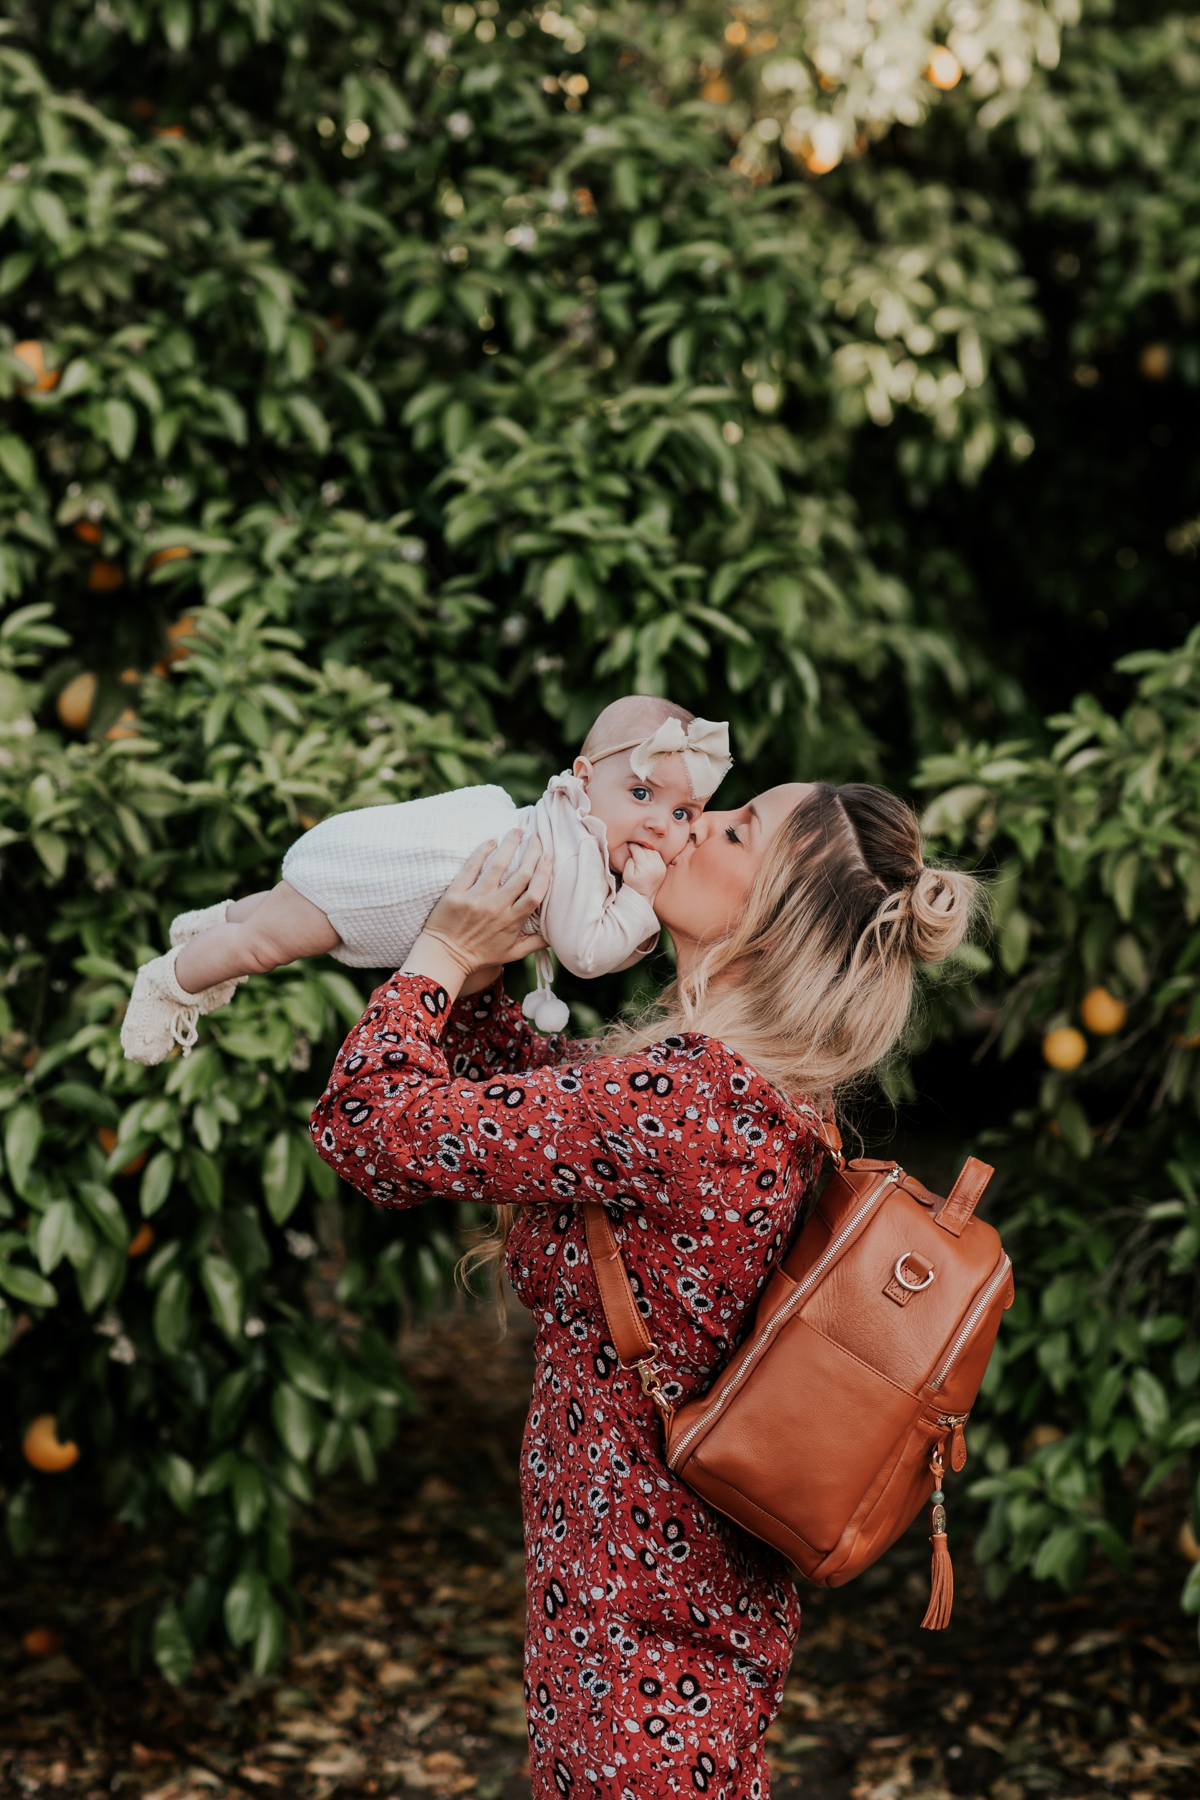 bcc119a424b24 Kandis_Marino_Photography_Lifestyle_Lily_Jade_Diaper_Bag_Influencer_Abassador_Baby_Mom_Blogger_Mommy_Blog_Newborn_Pregnancy_0005.jpg